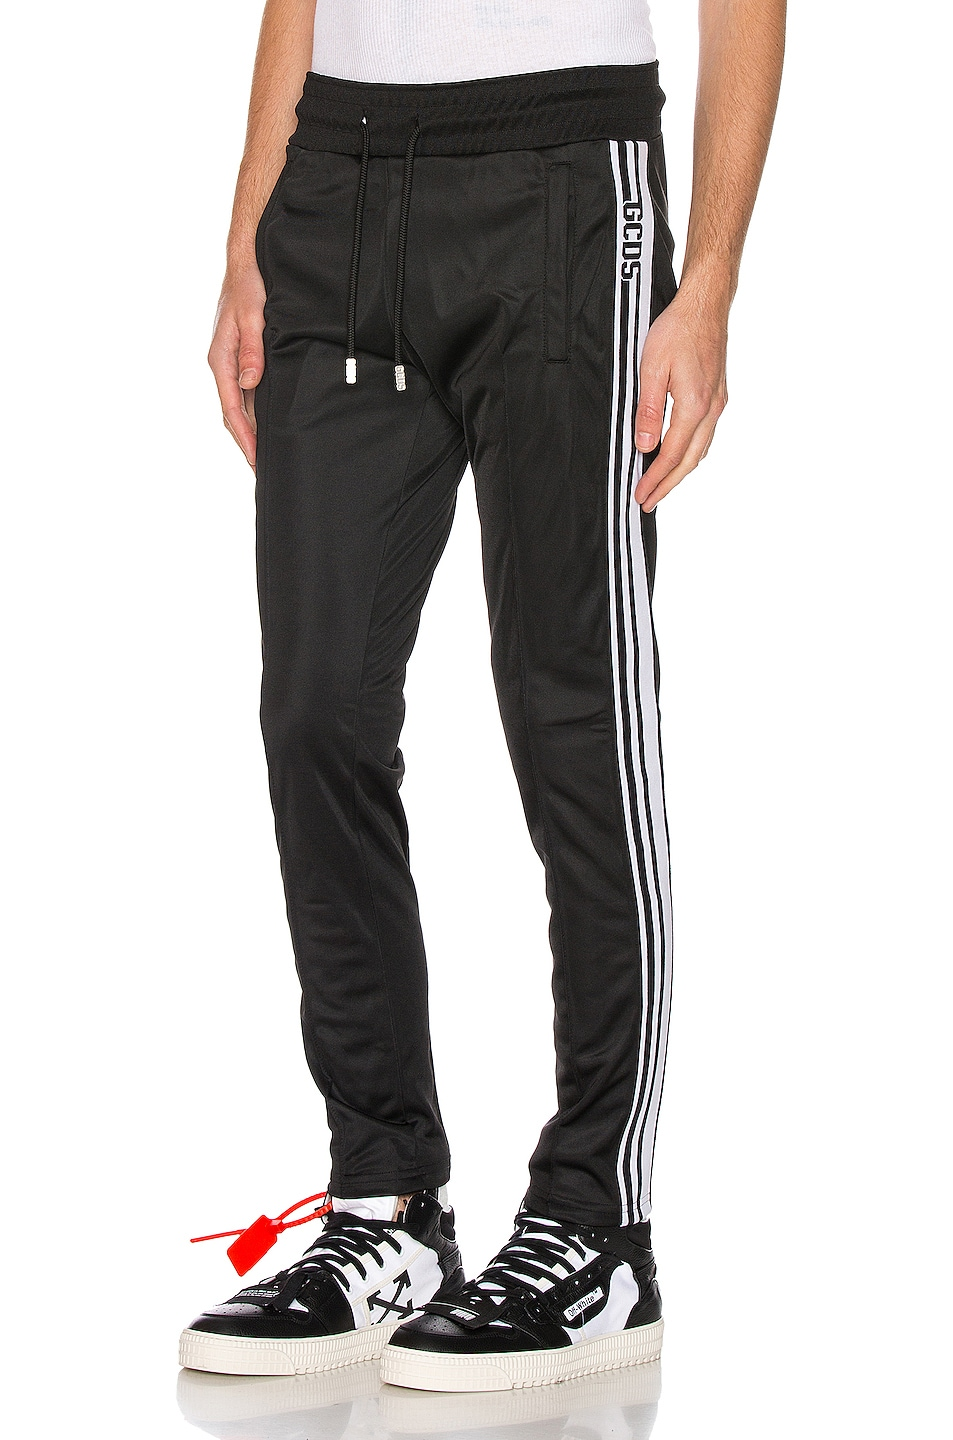 Image 1 of GCDS Straight Acetate Sweatpants in Black